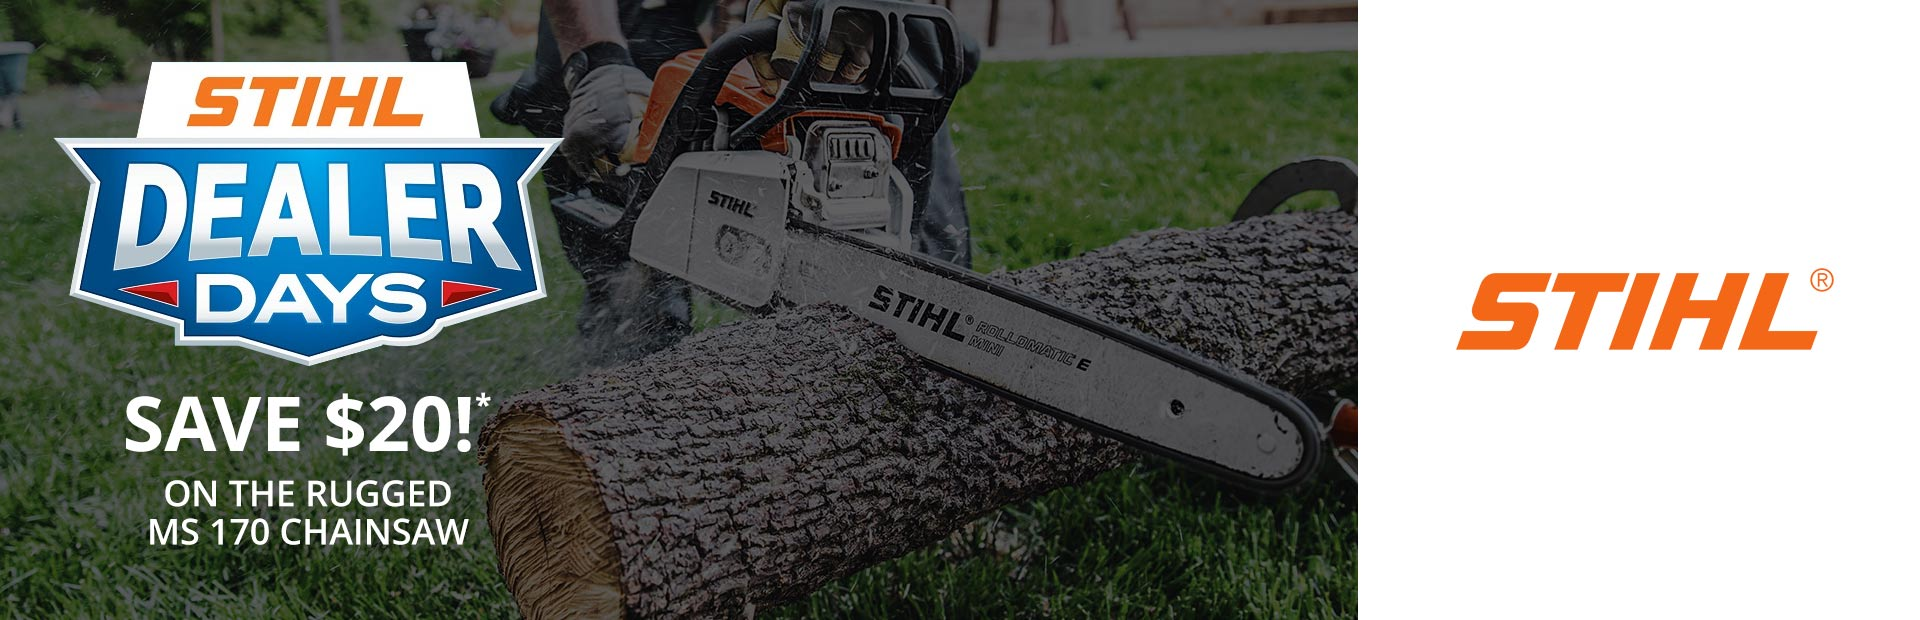 STIHL: STIHL Dealer Days Are Happening Now! - Chainsaw